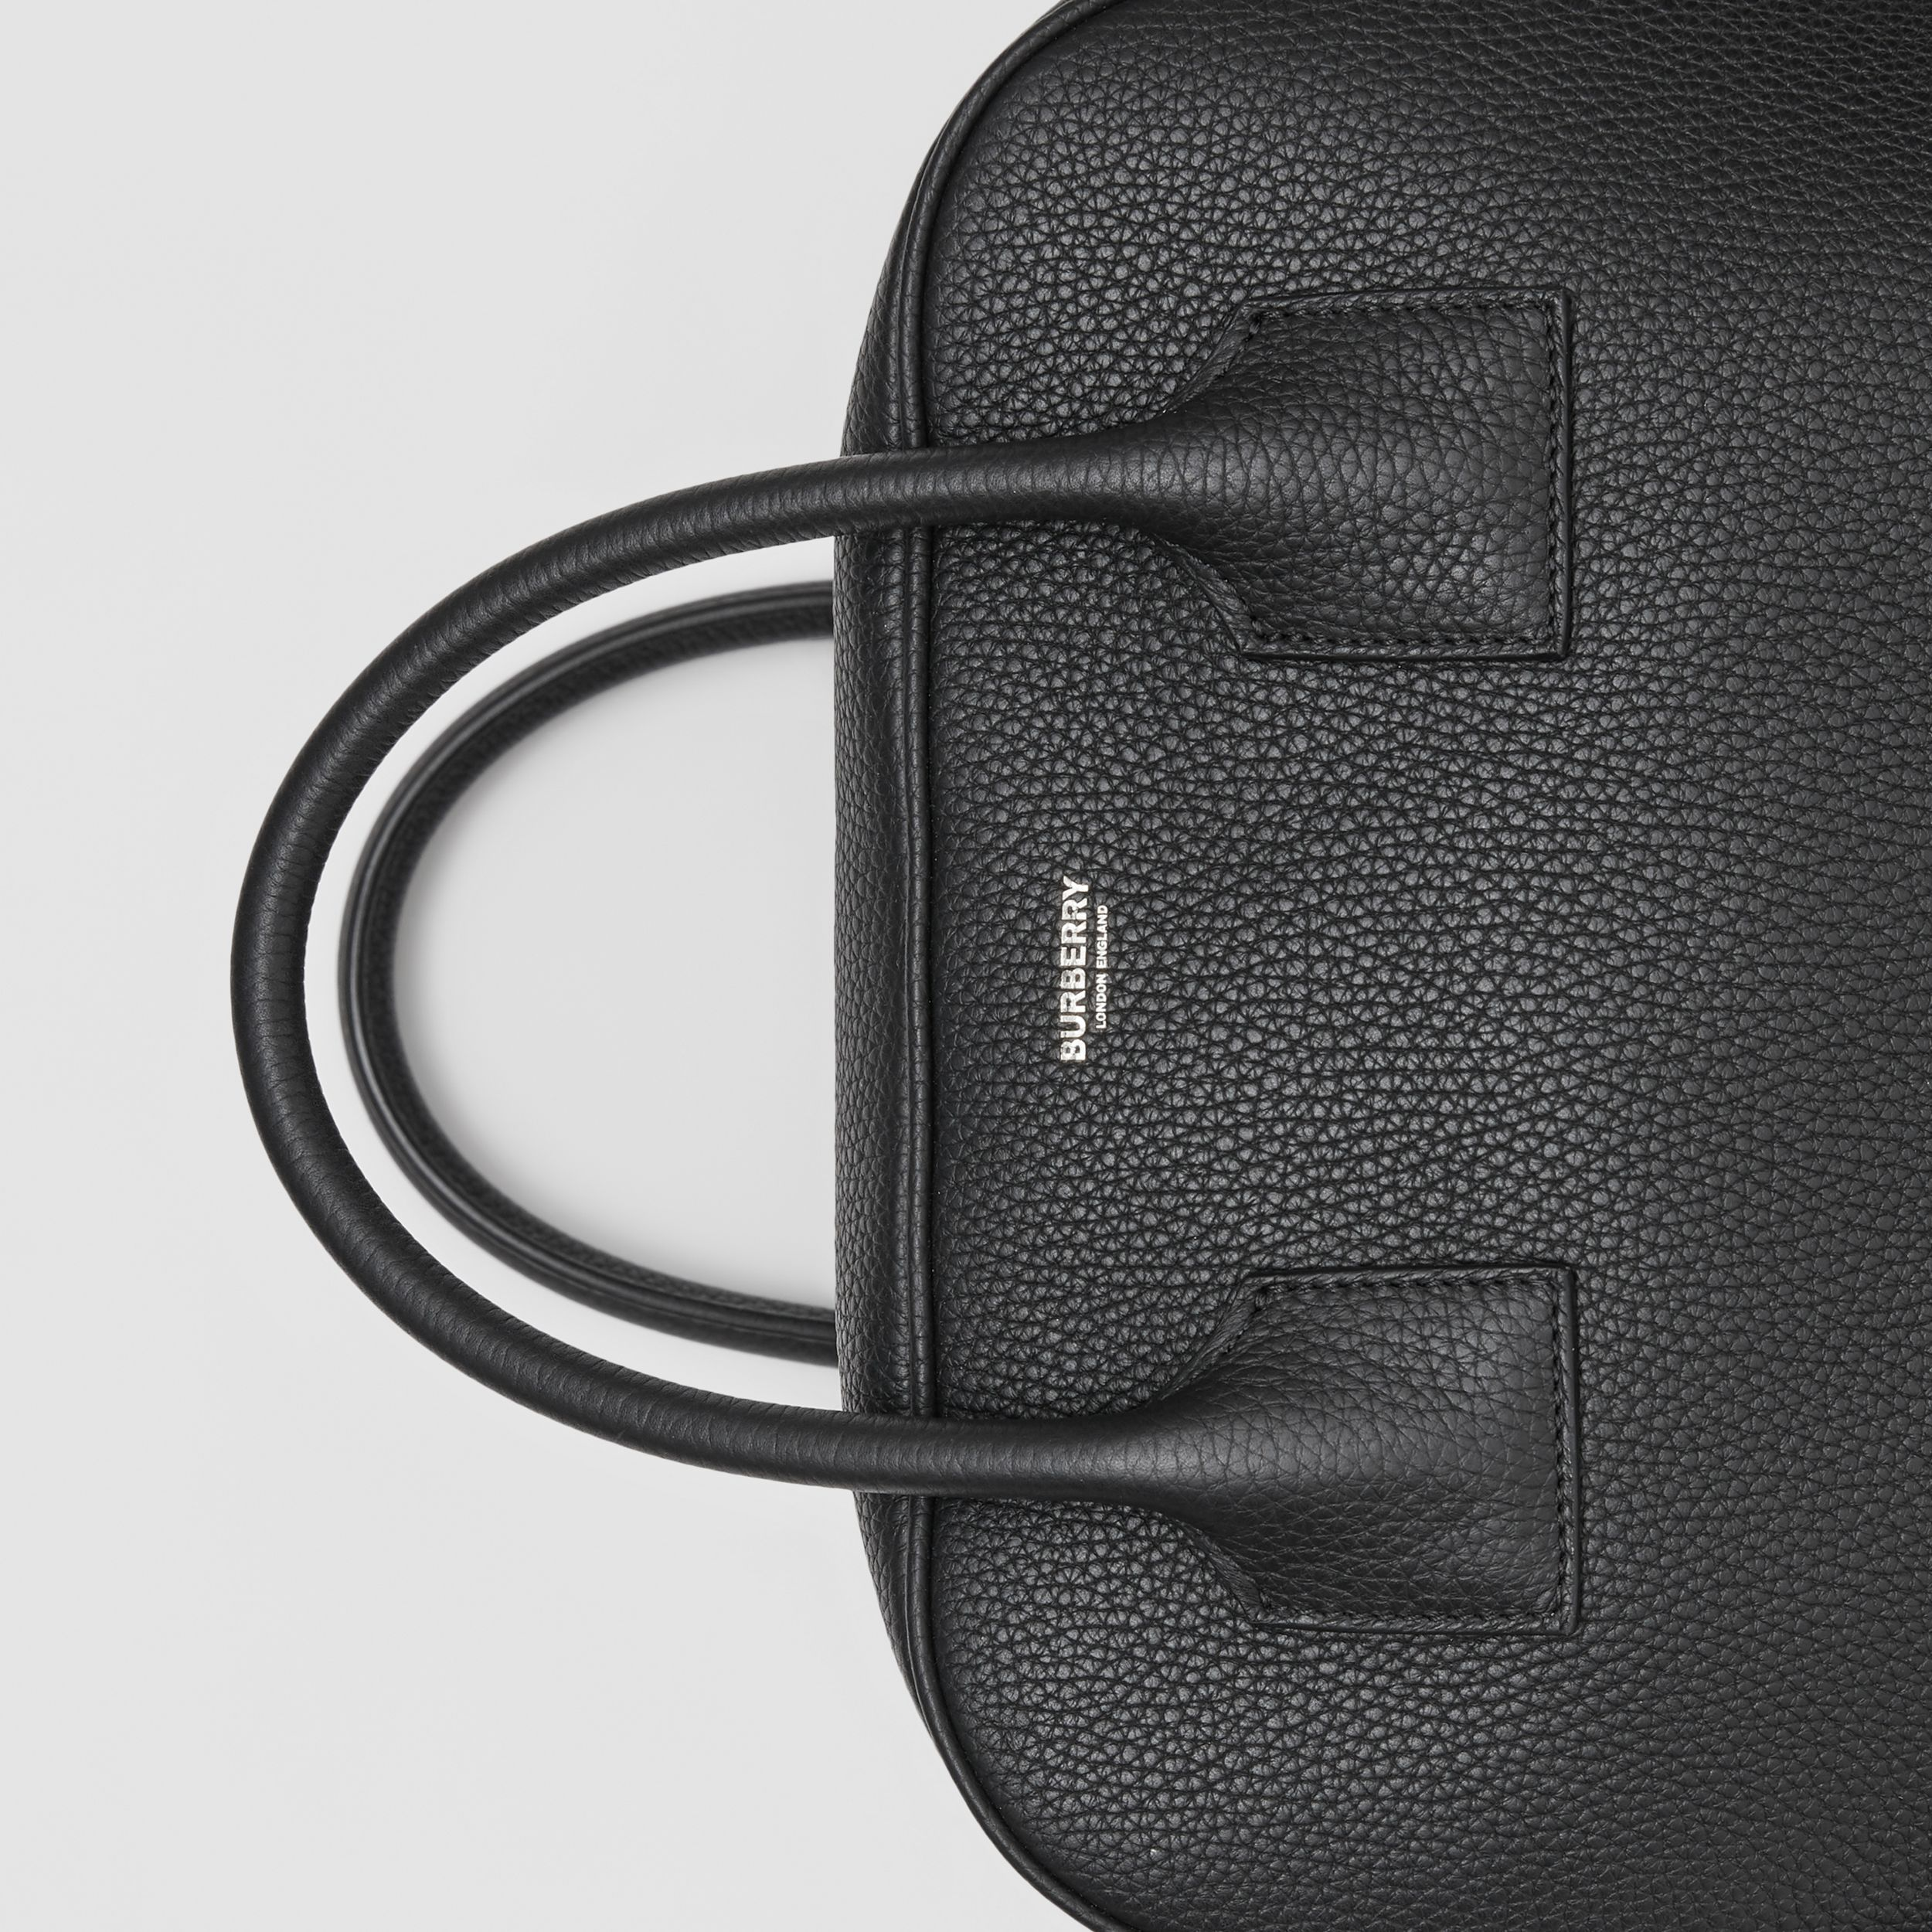 Medium Leather Cube Bag in Black - Women | Burberry United Kingdom - 2